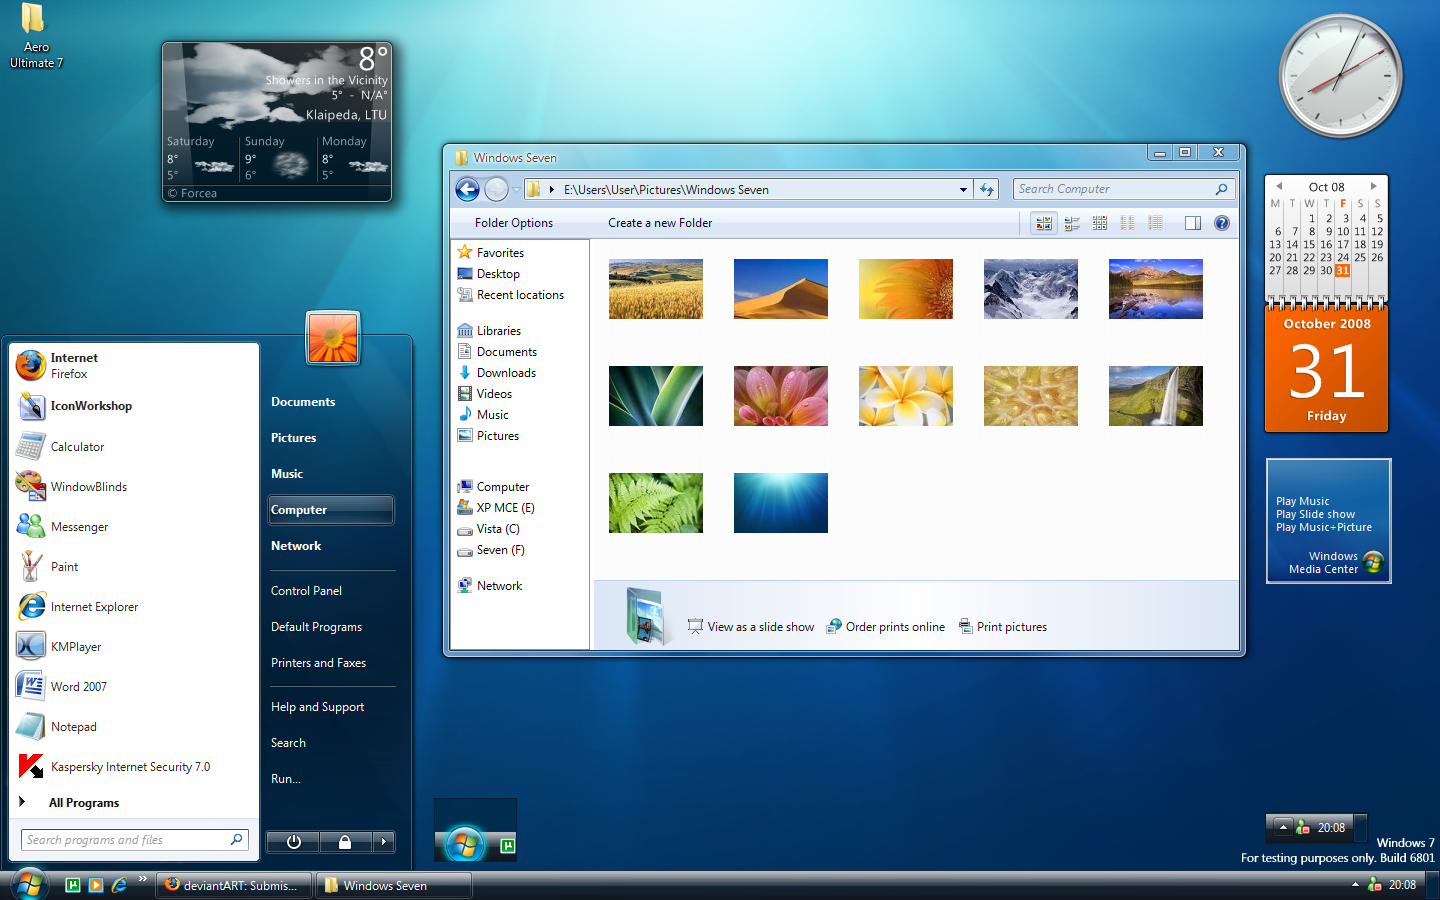 Detailed Windows 7 Features are listed on official Windows site .